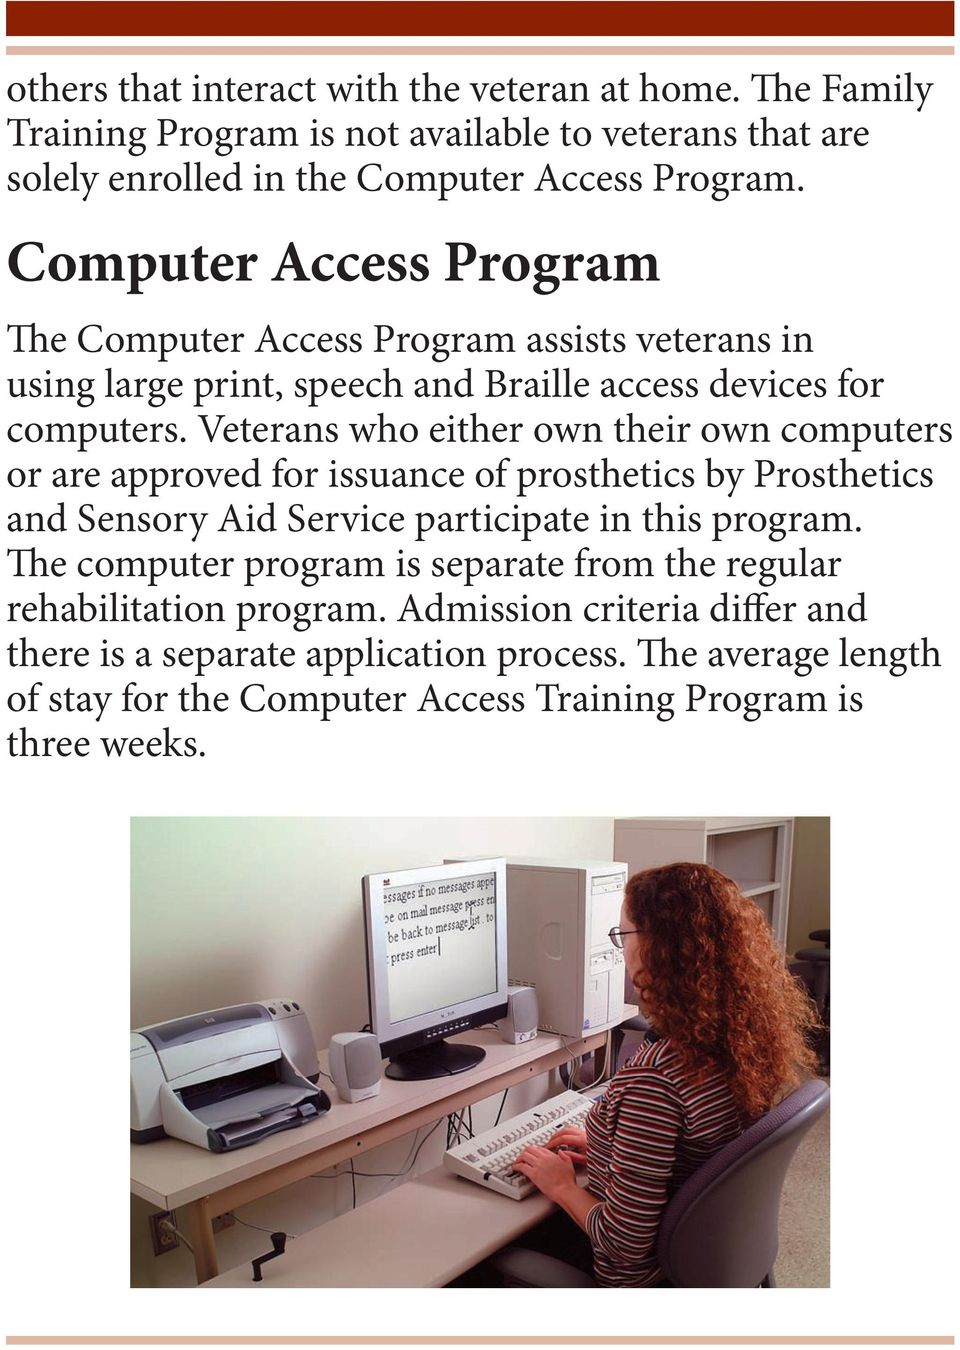 Veterans who either own their own computers or are approved for issuance of prosthetics by Prosthetics and Sensory Aid Service participate in this program.